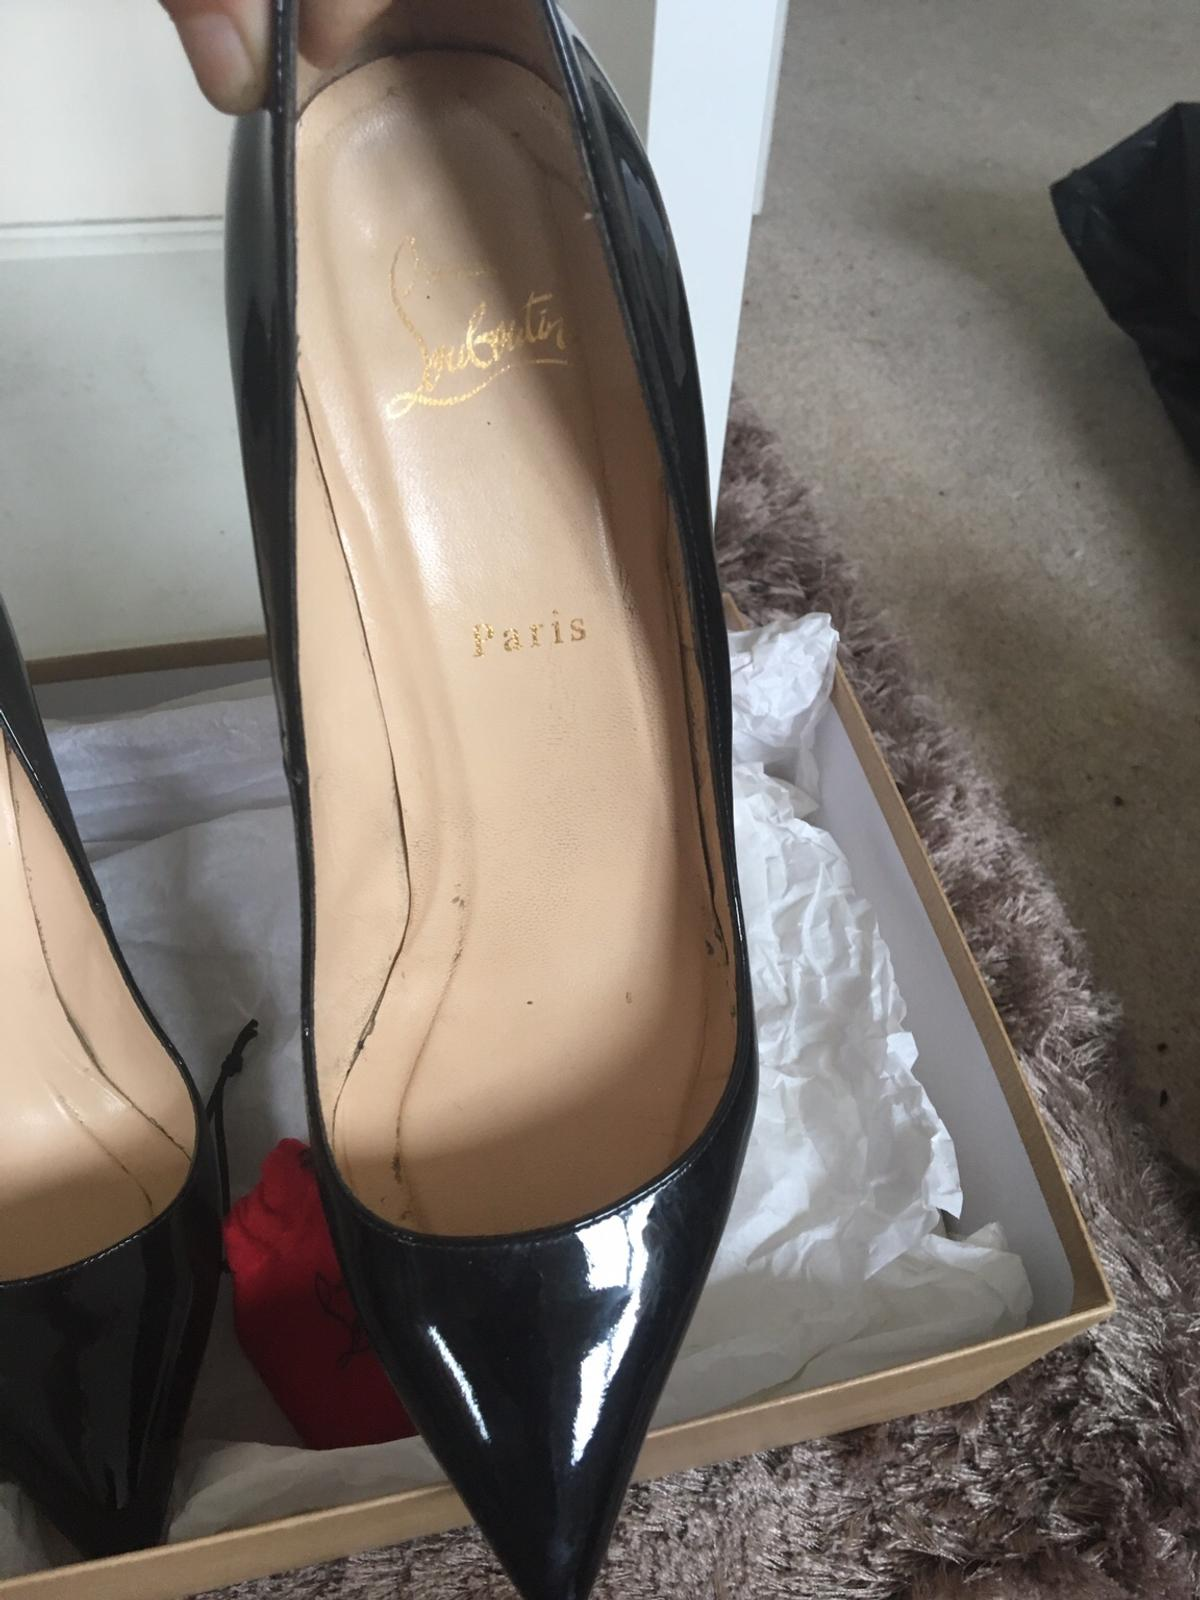 best website 2b2fa 0631f Genuine Christian Louboutin Shoes in PR7 Chorley for £195.00 ...